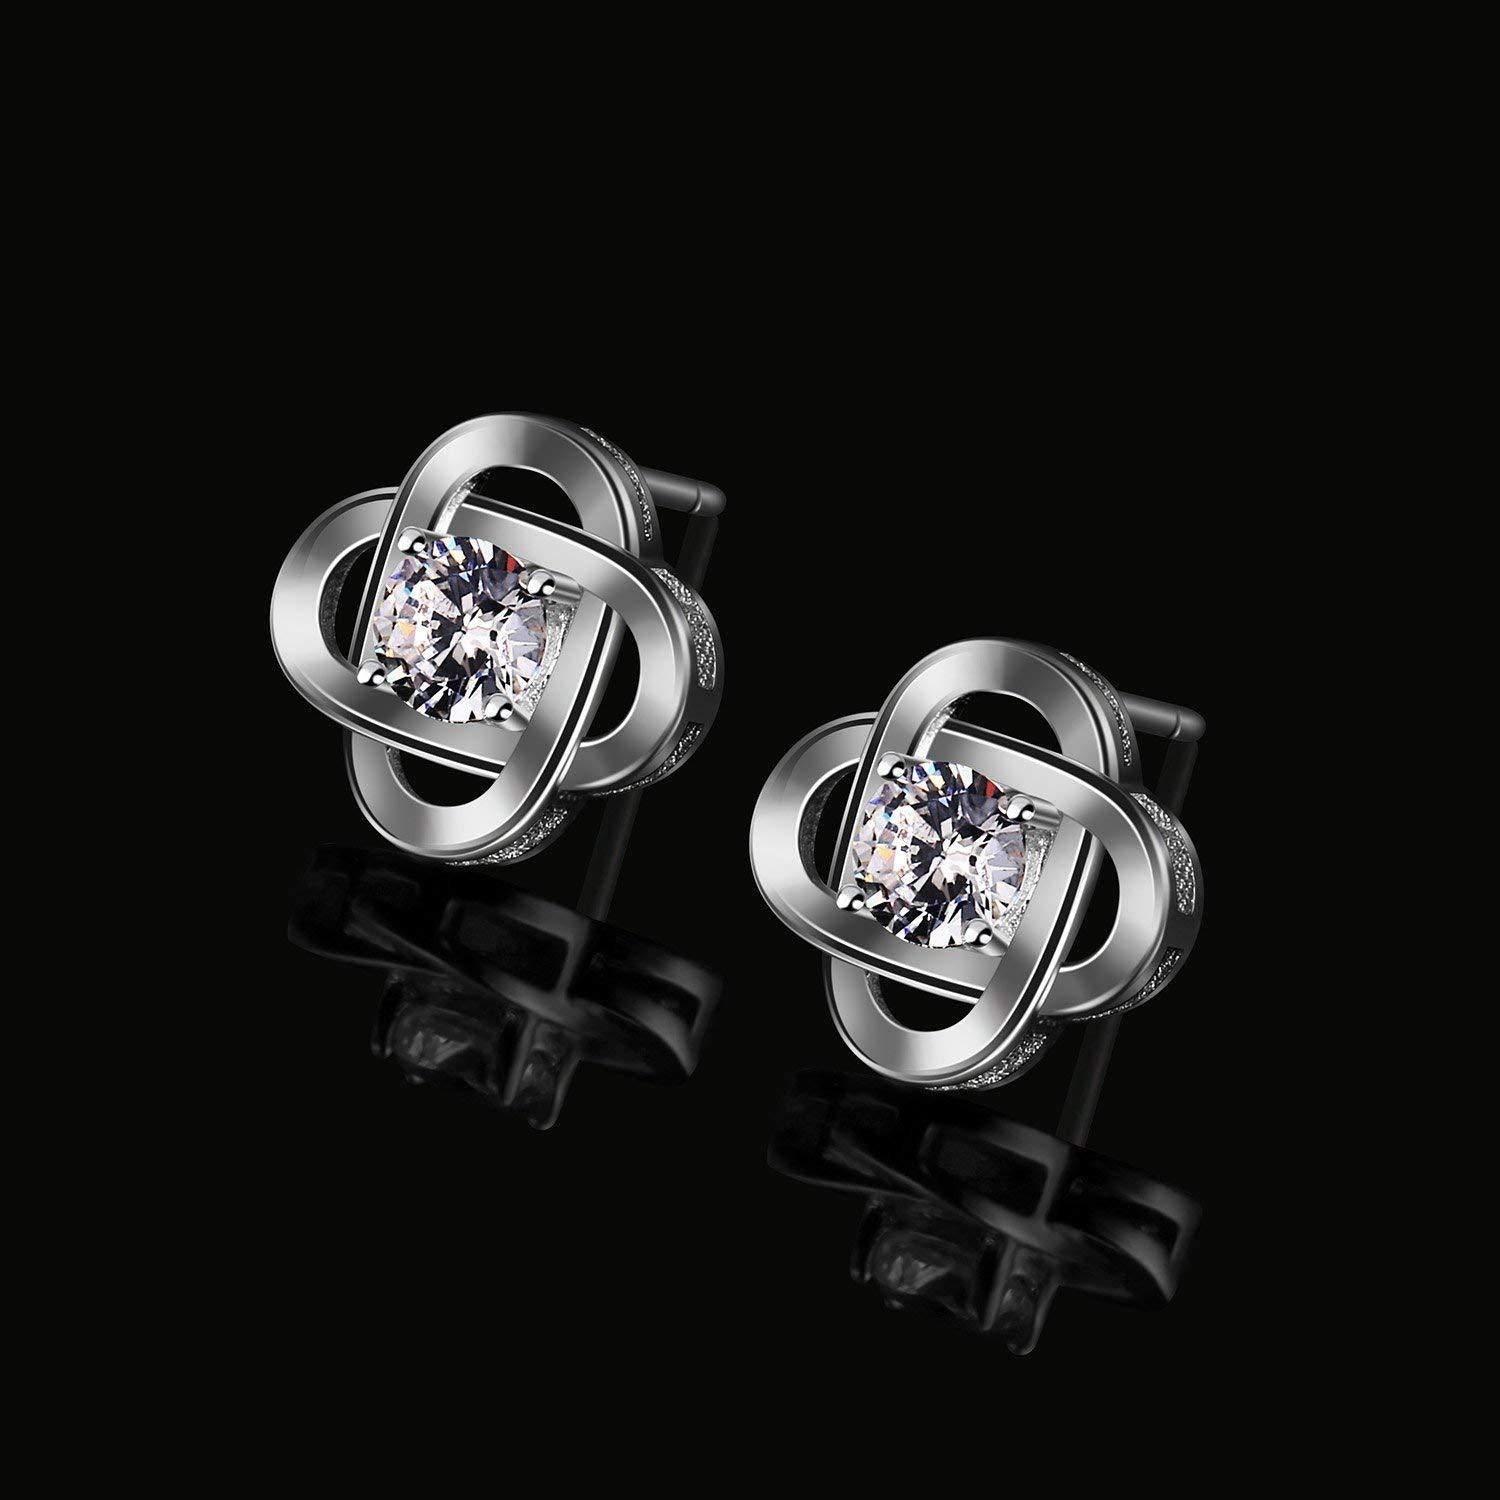 S925 Sterling Silver Korean Fashion Personality Four-Leaf Clover Zircon Earrings Jewelry Cross-Border Exclusive